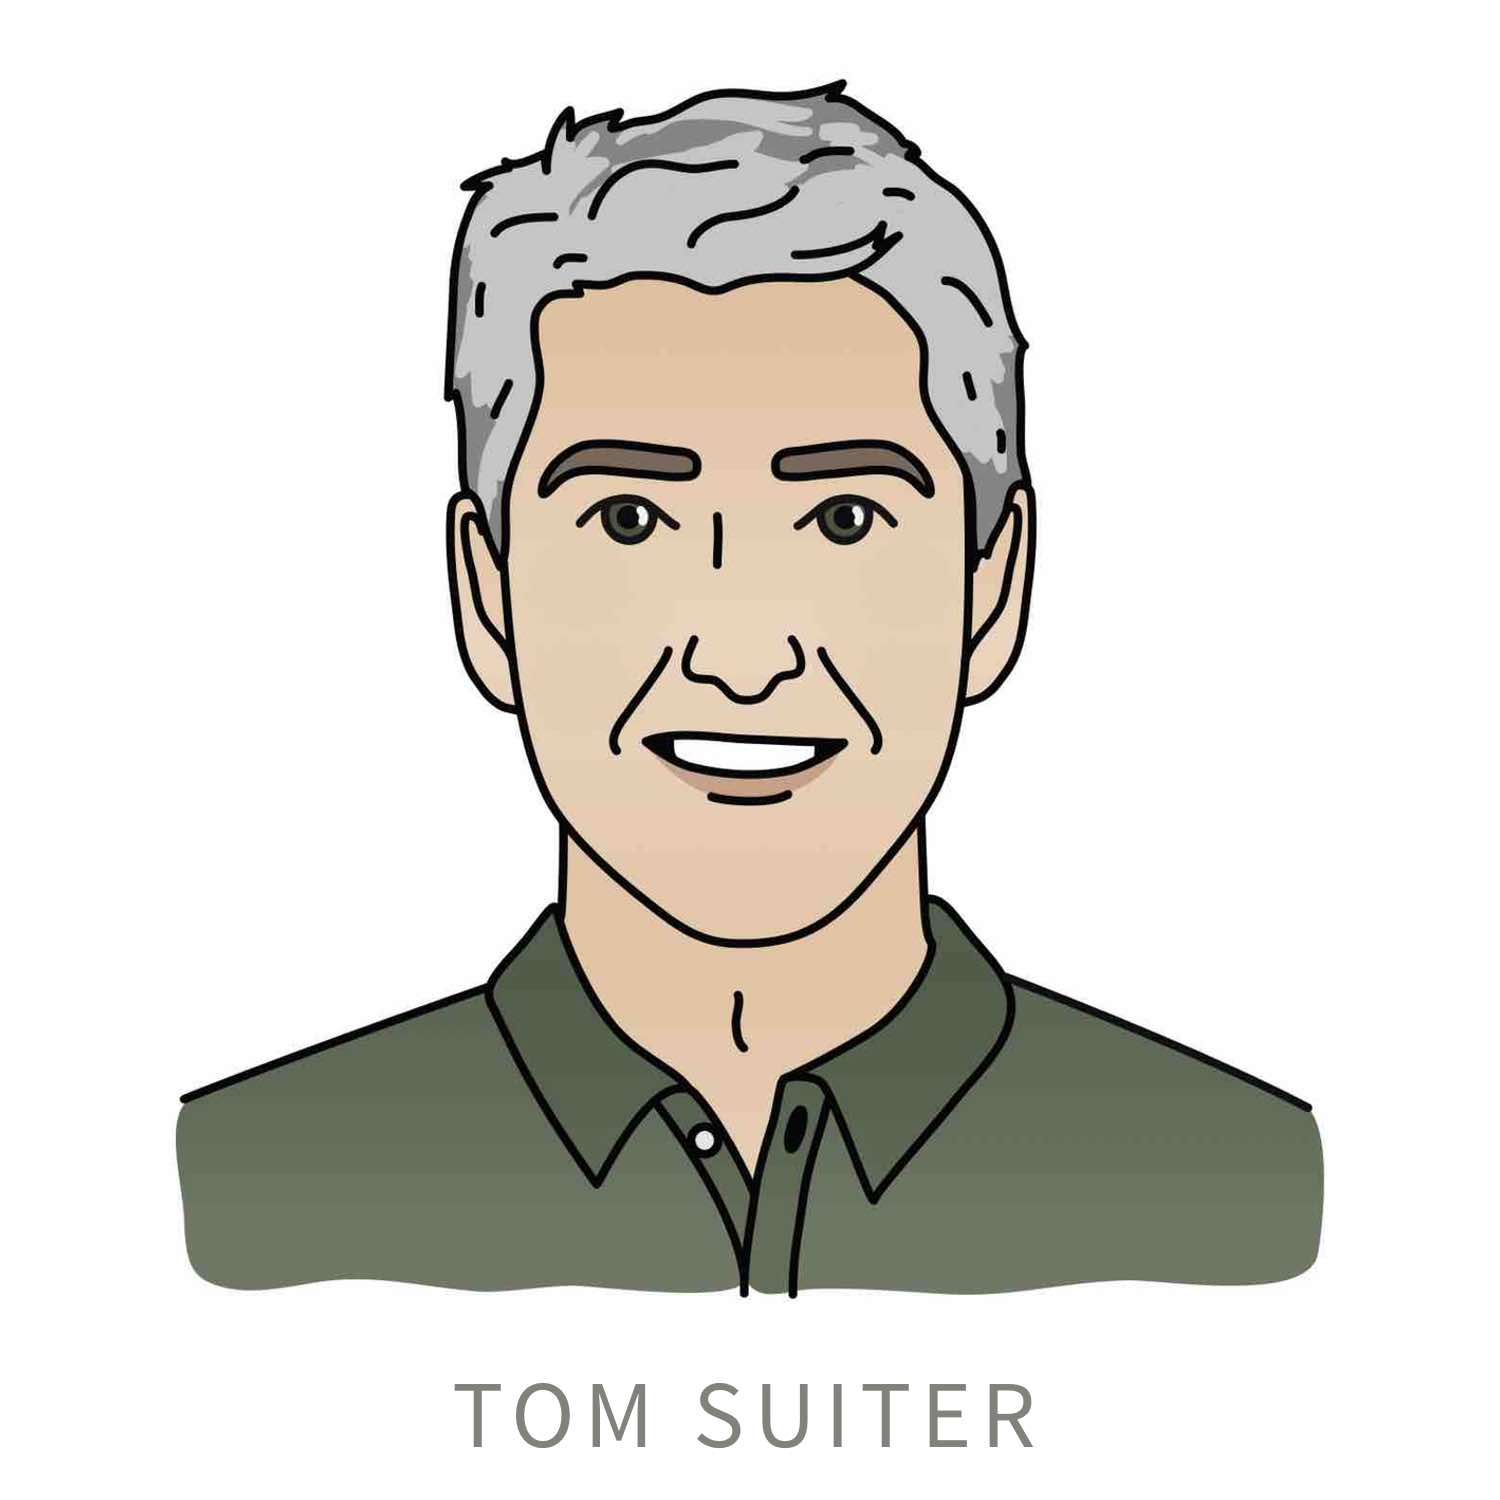 Tom Suiter Intellects.co